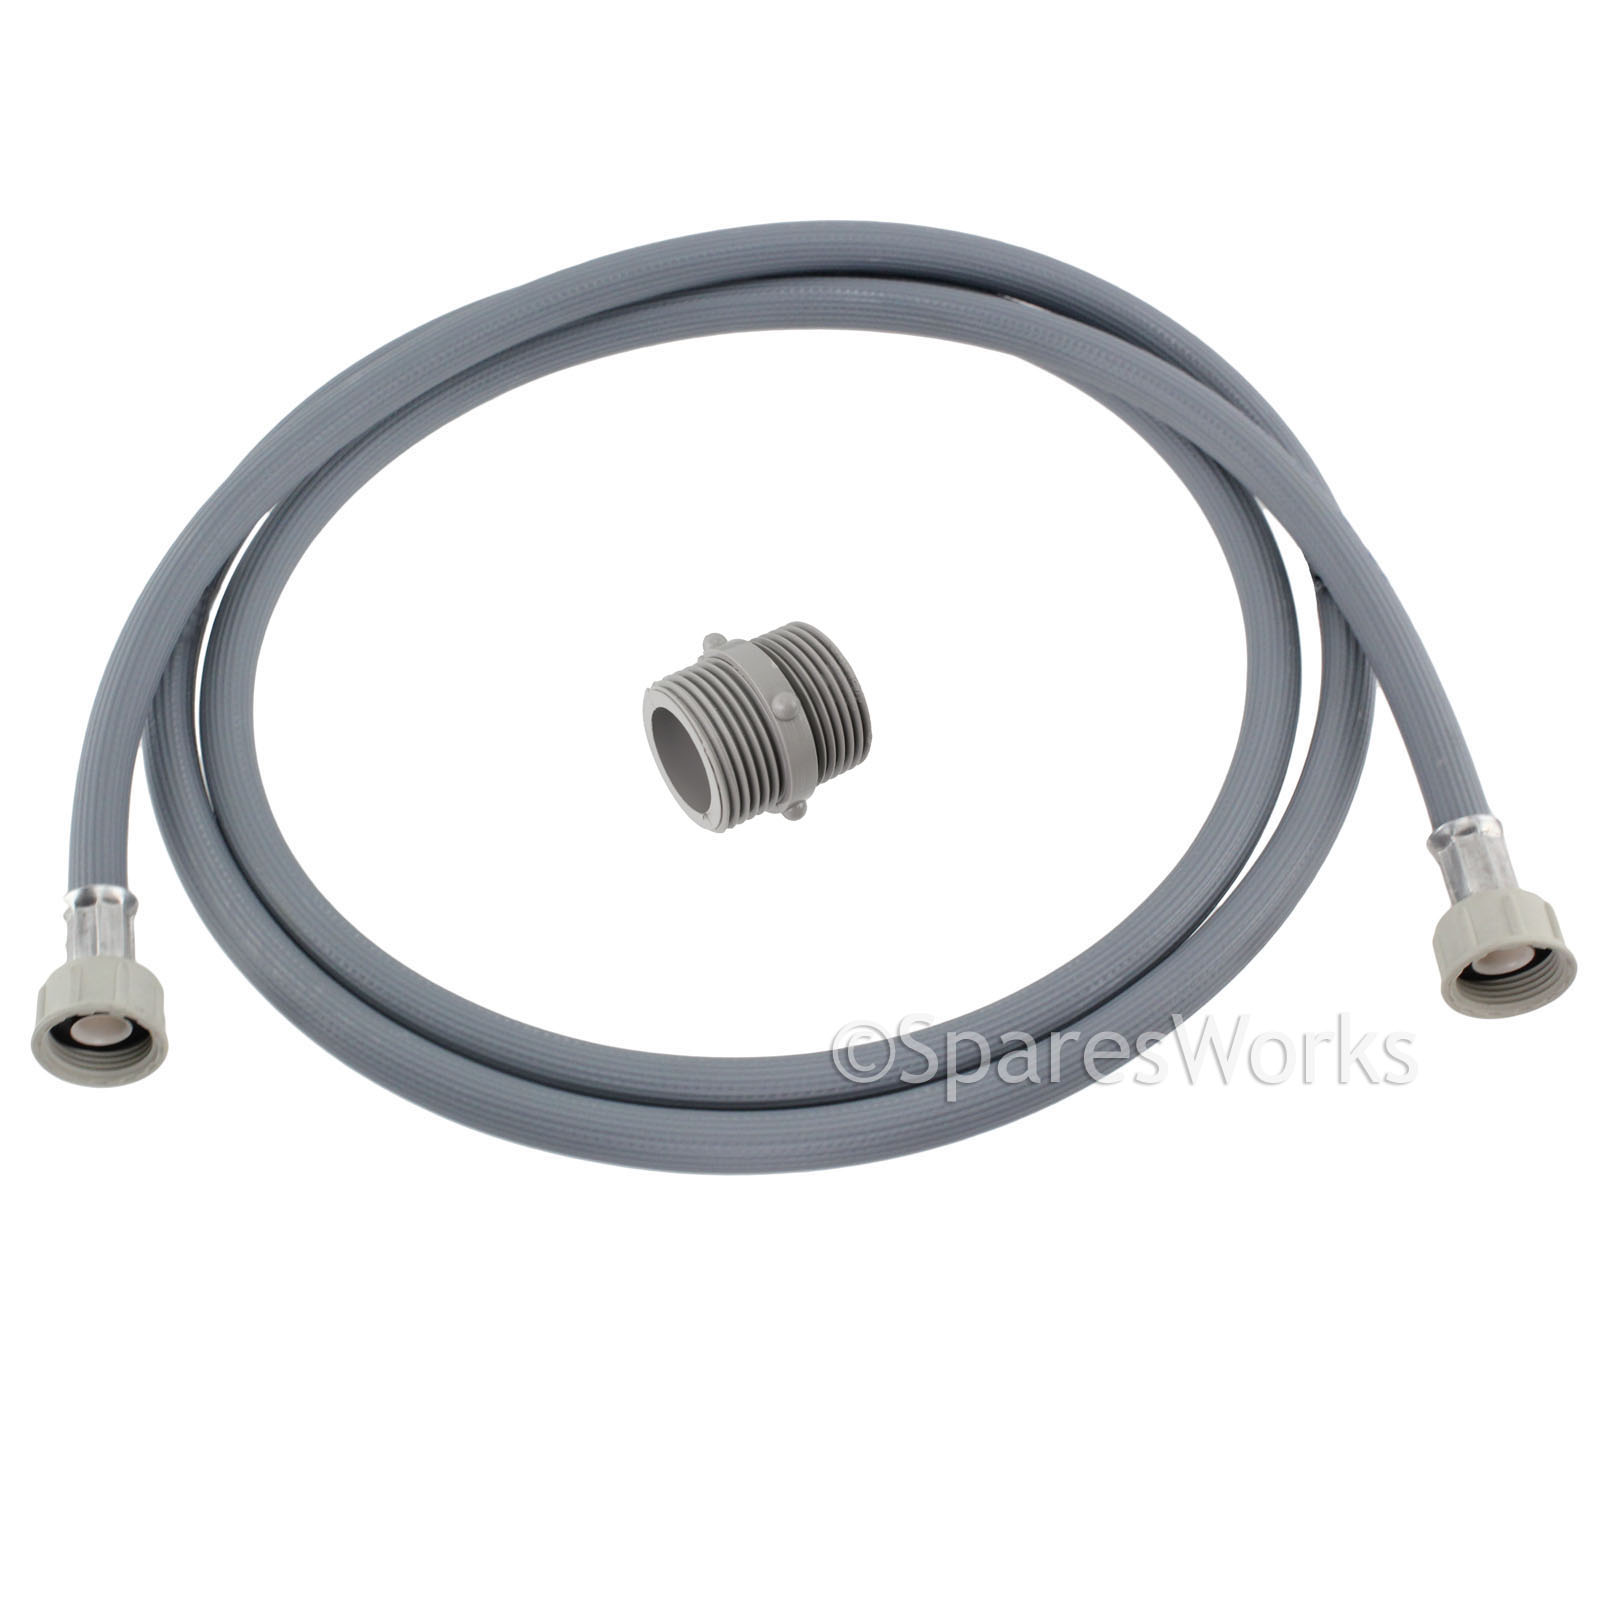 inlet hose for washing machine